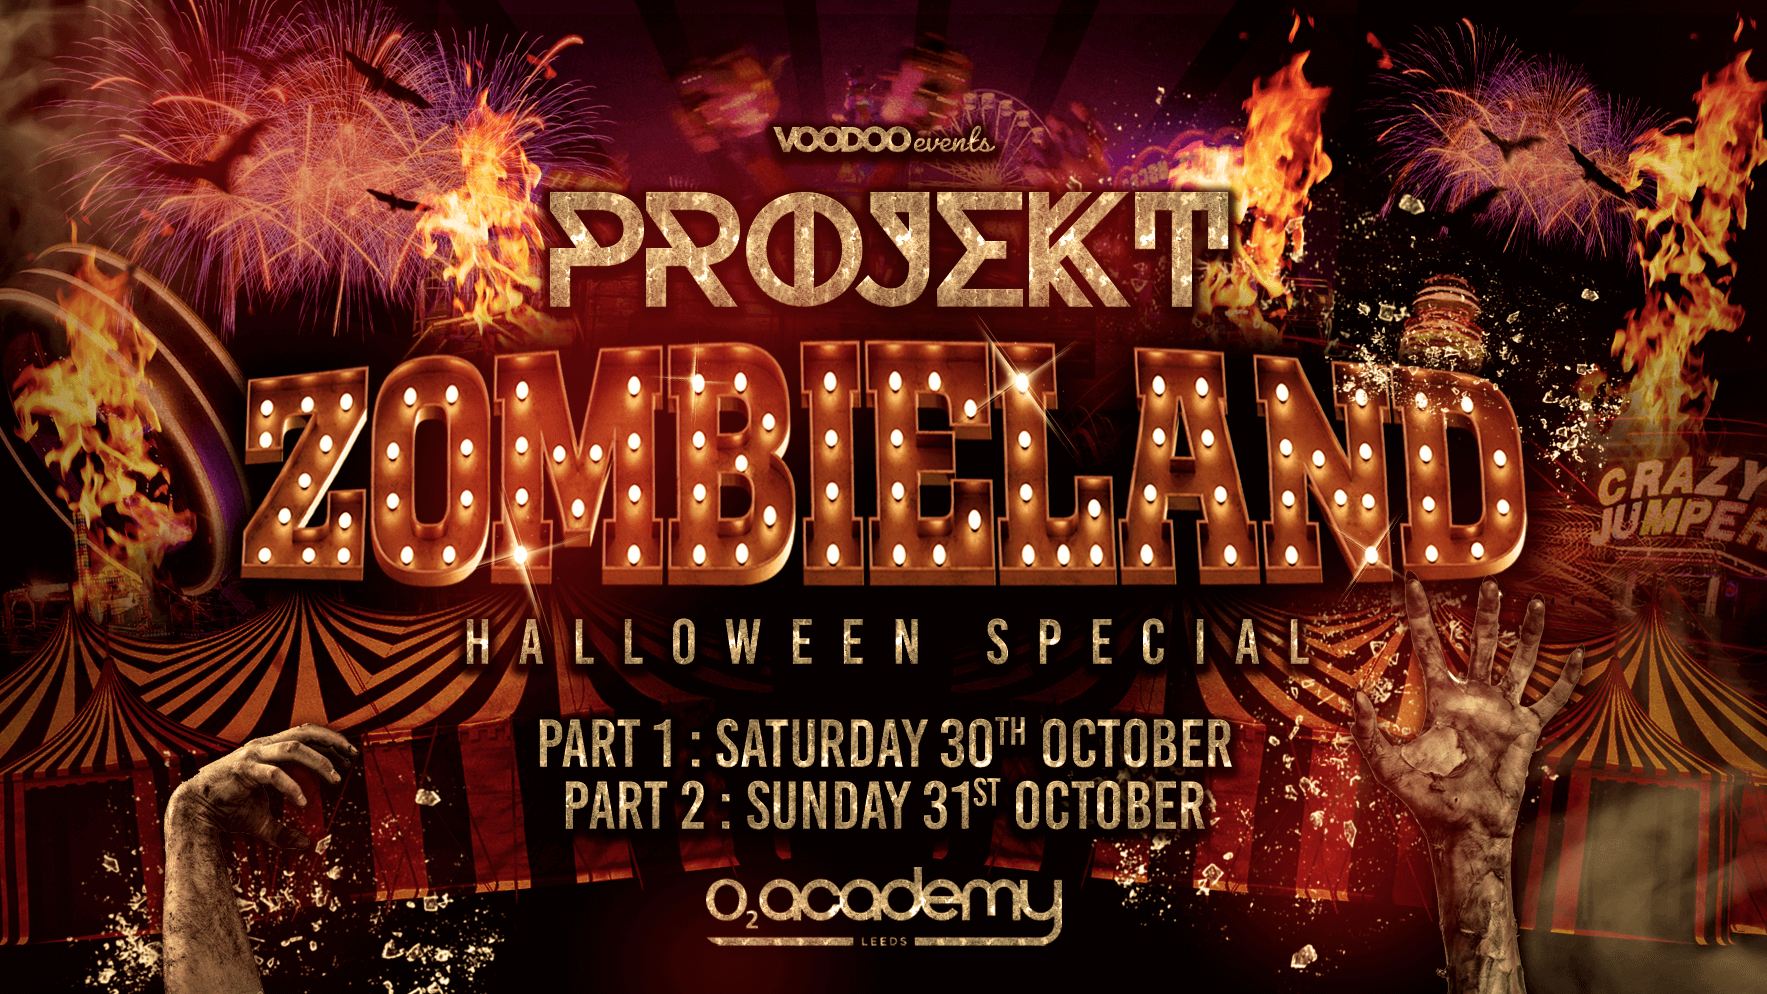 Projekt Zombieland Halloween Special Part 2 at the O2 Academy- 31st October